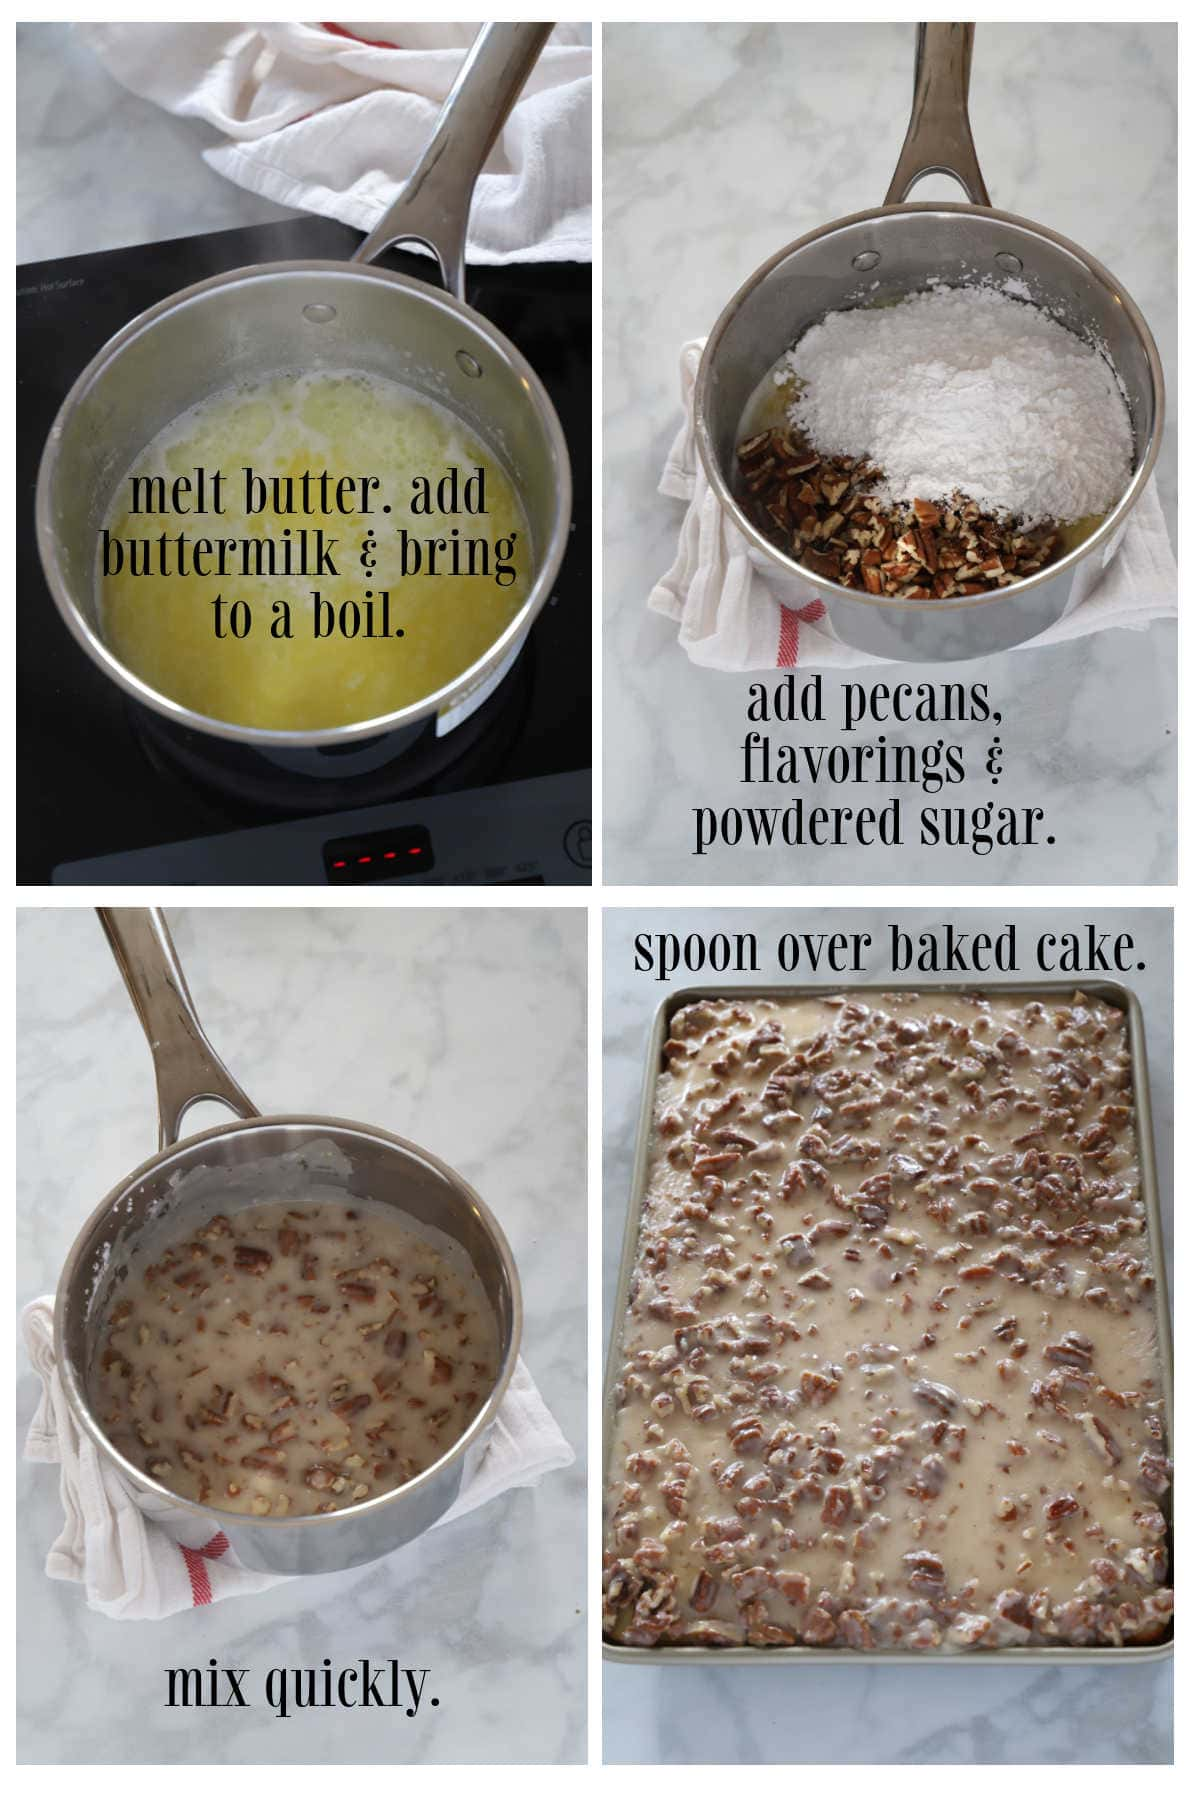 Step by step image for making the icing for white Texas sheet cake.